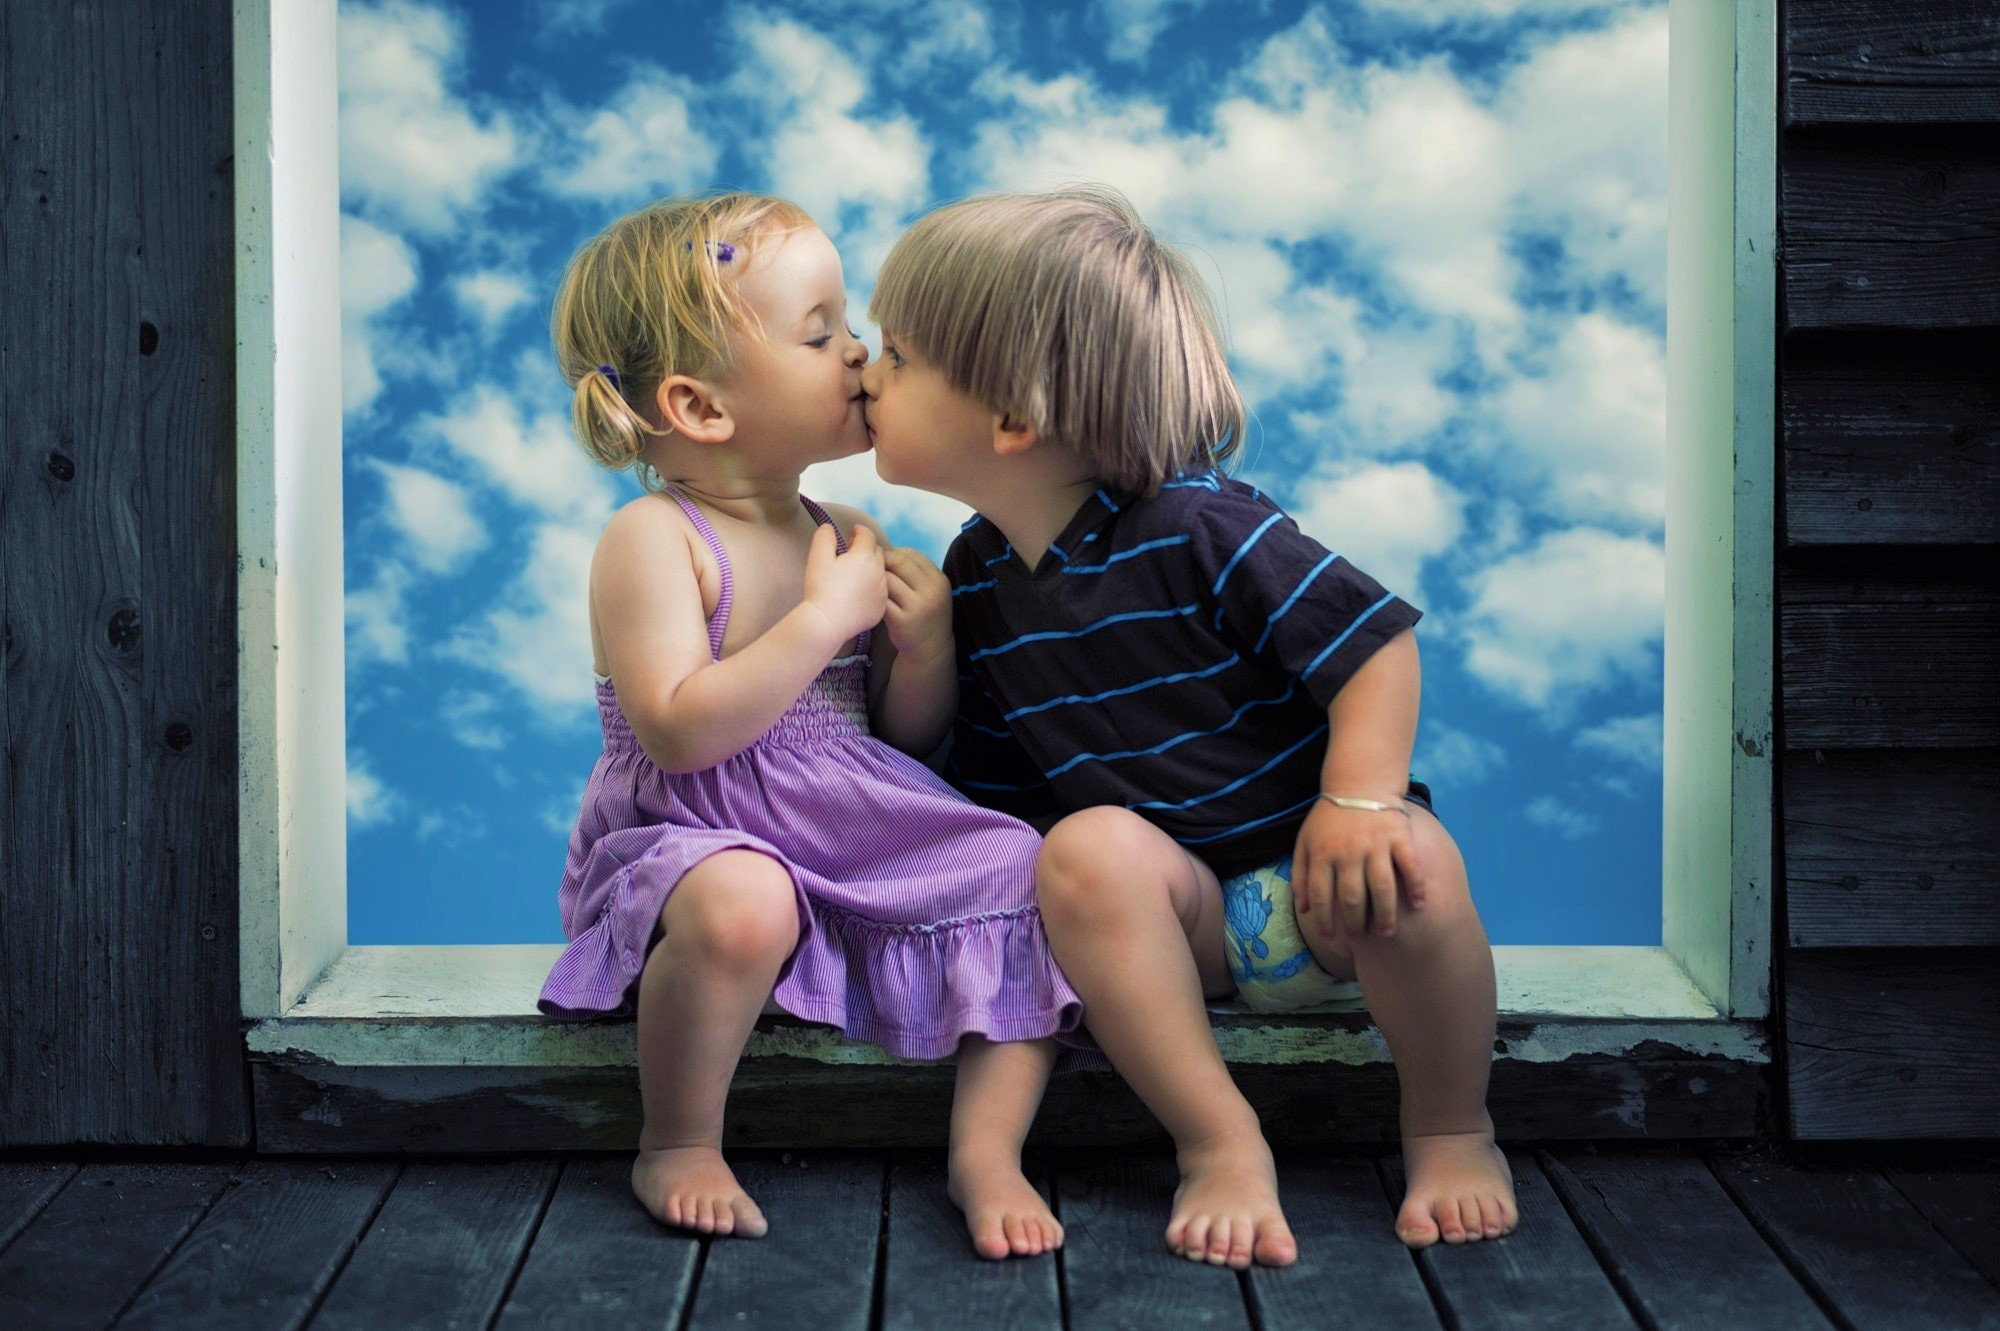 Little Boy Little Girl Cute Kiss, Hd Cute, 4K Wallpapers -2738